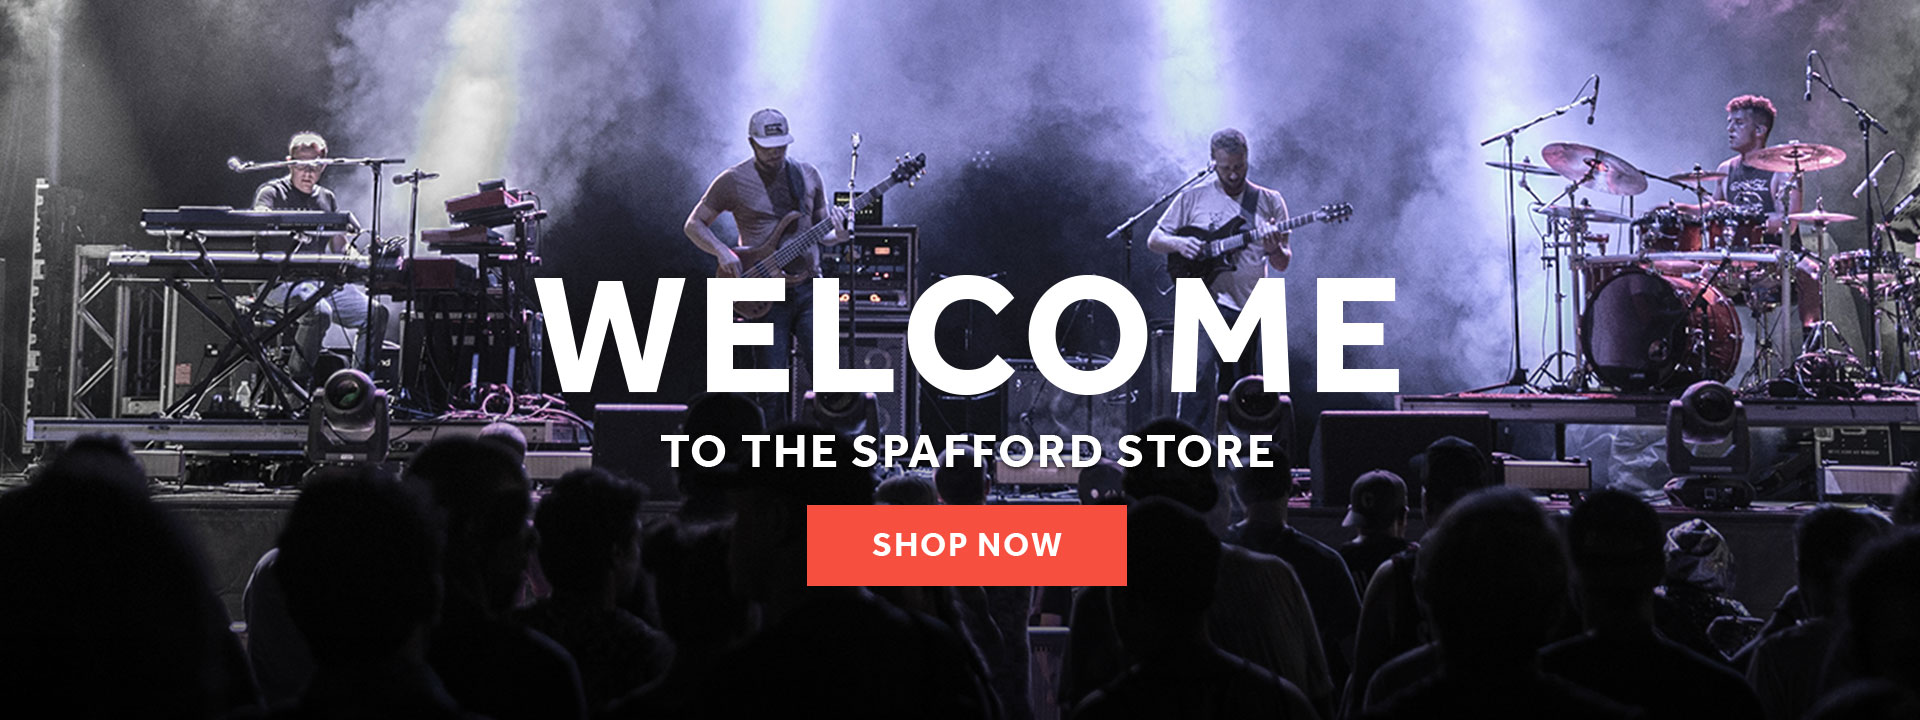 Welcome to the Spafford store | Shop Now